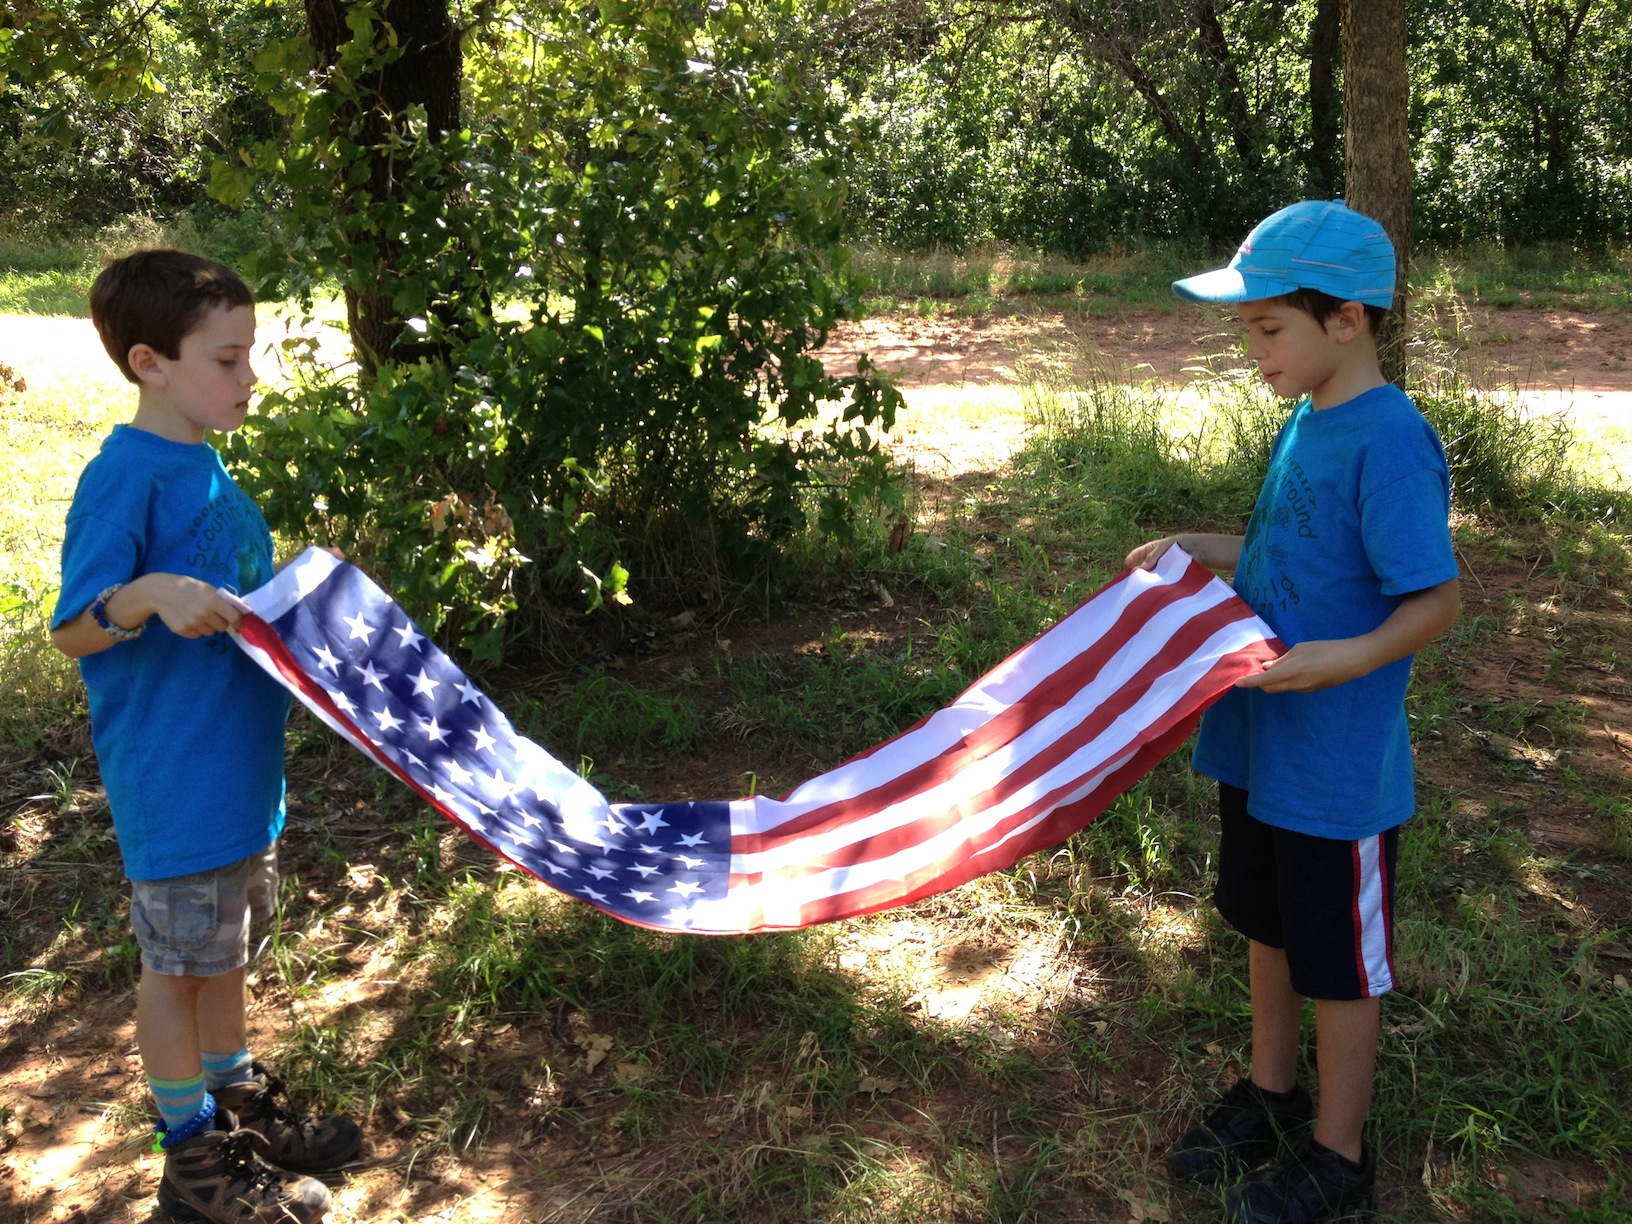 Walking To Webelos And Aiming For Arrow Day Camp The